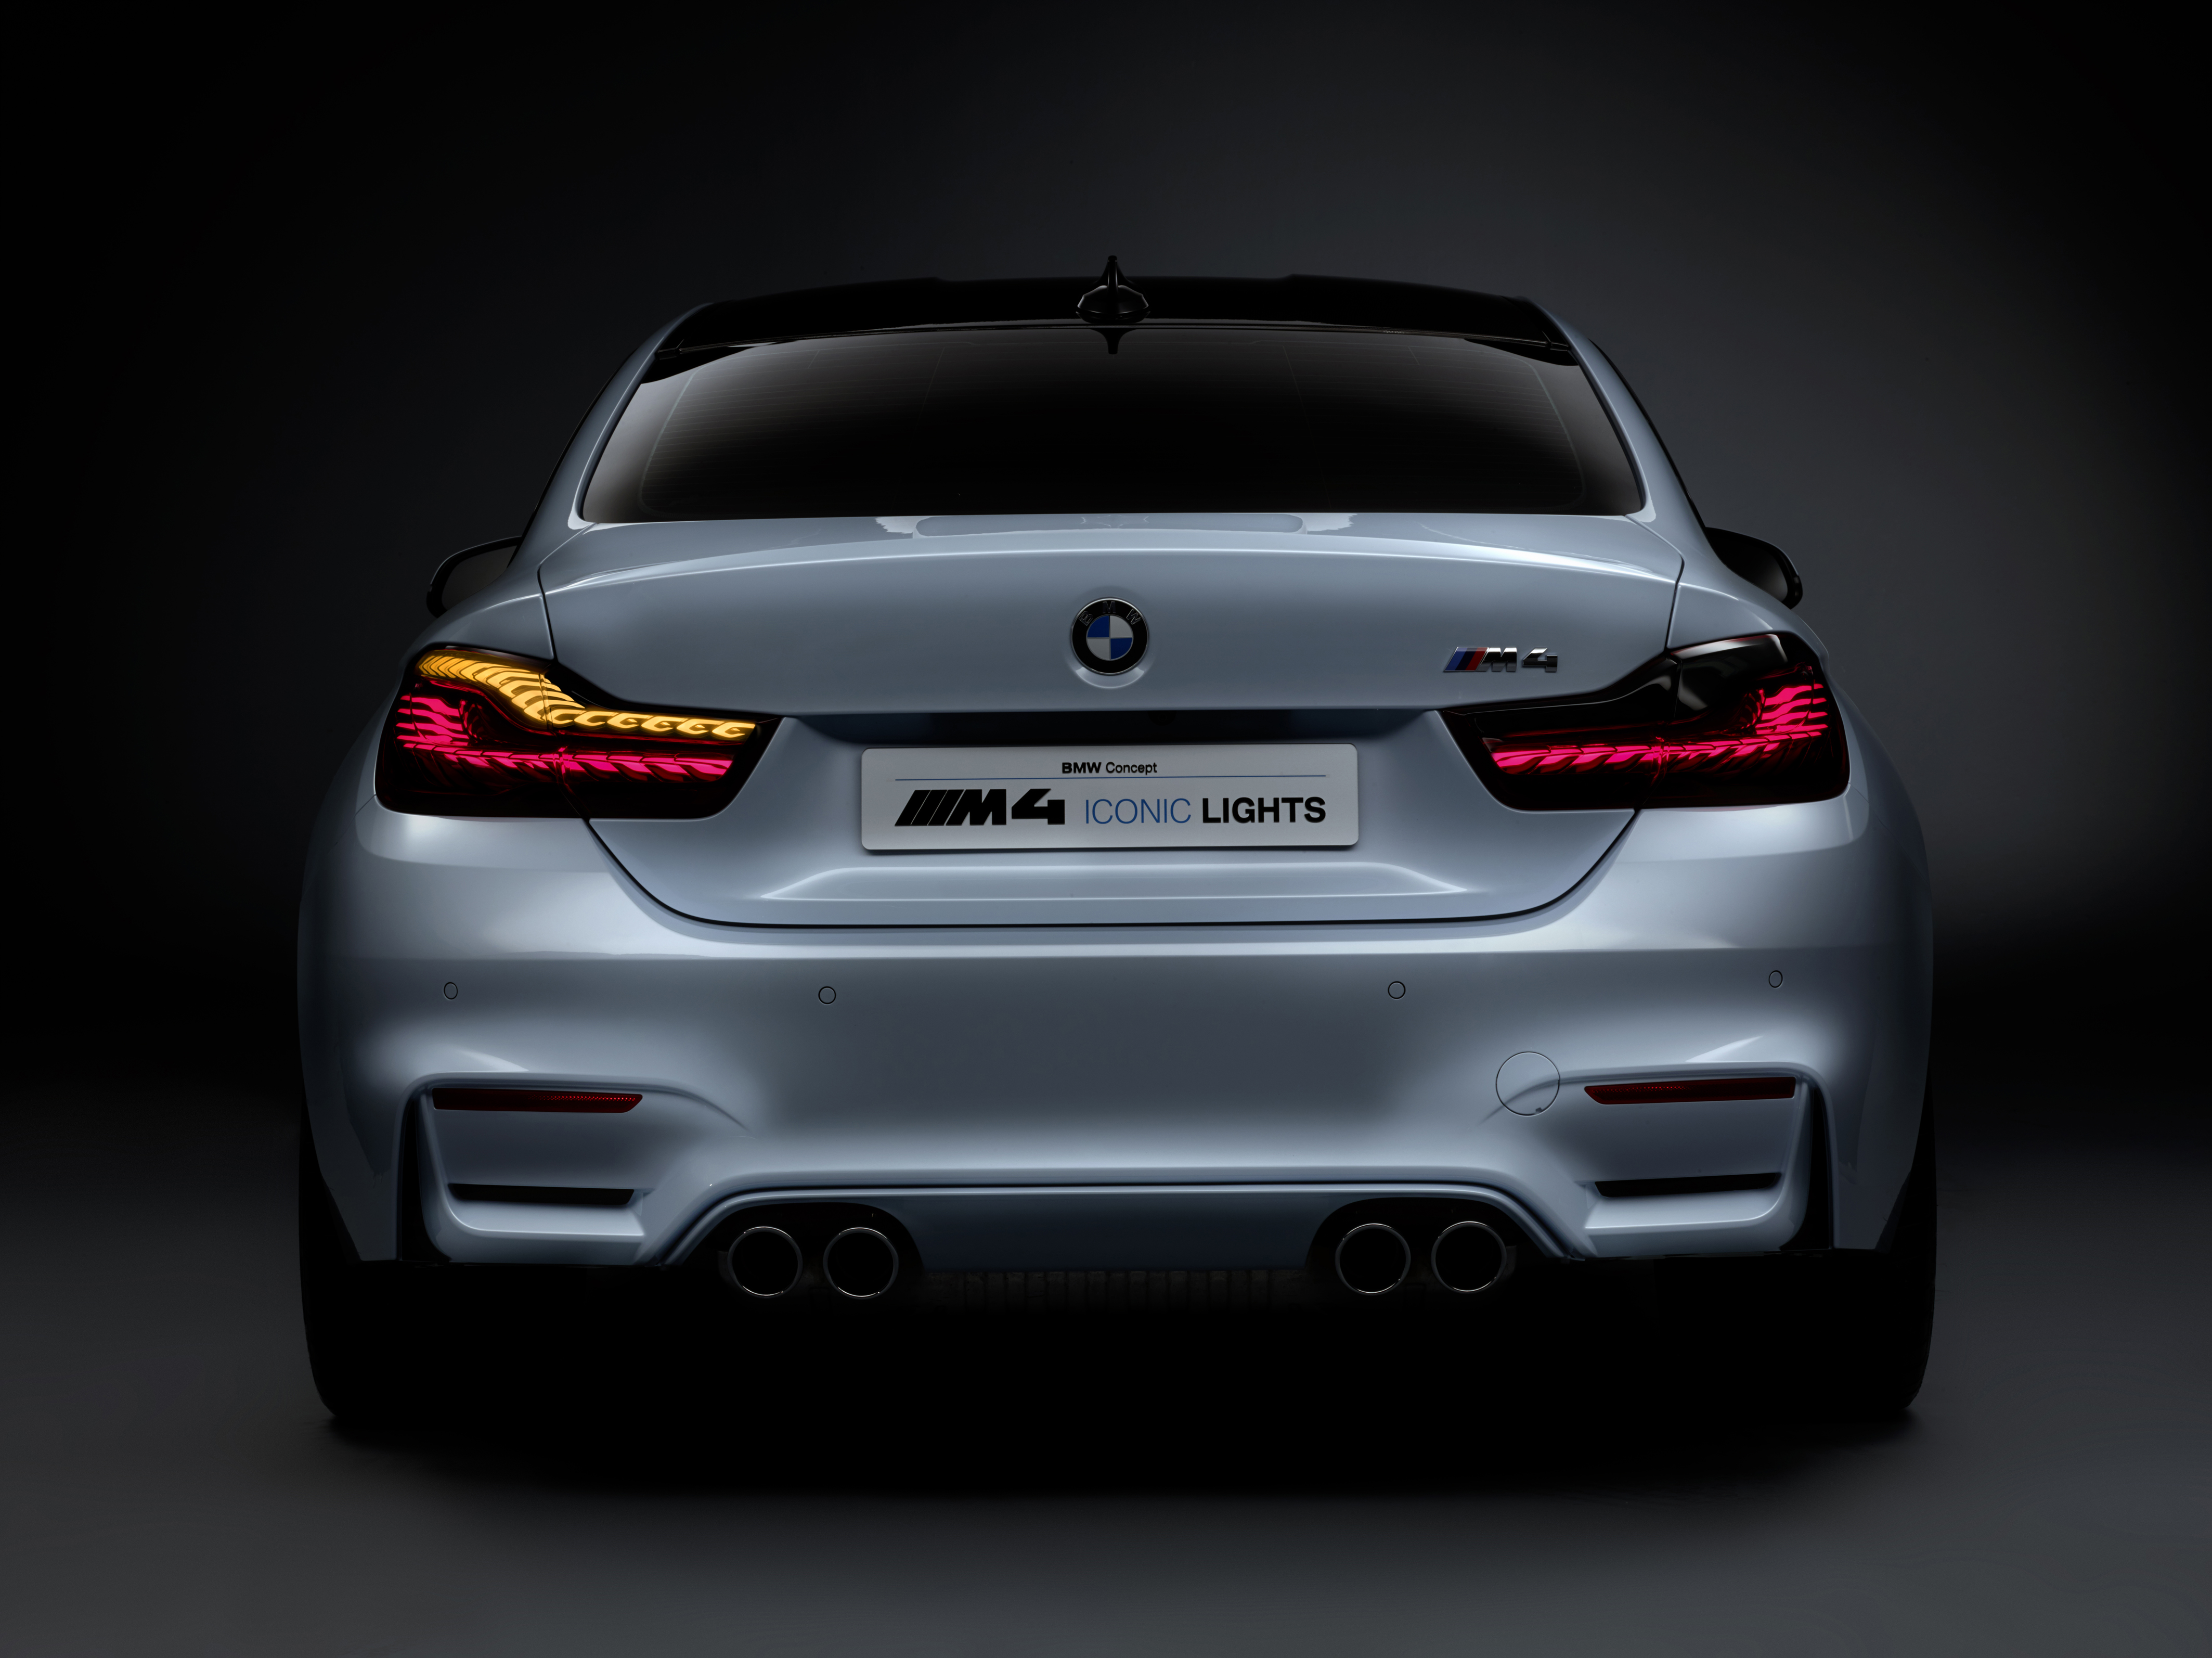 Ces 2015 Bmw M4 Concept Iconic Lights Showcases Laser And